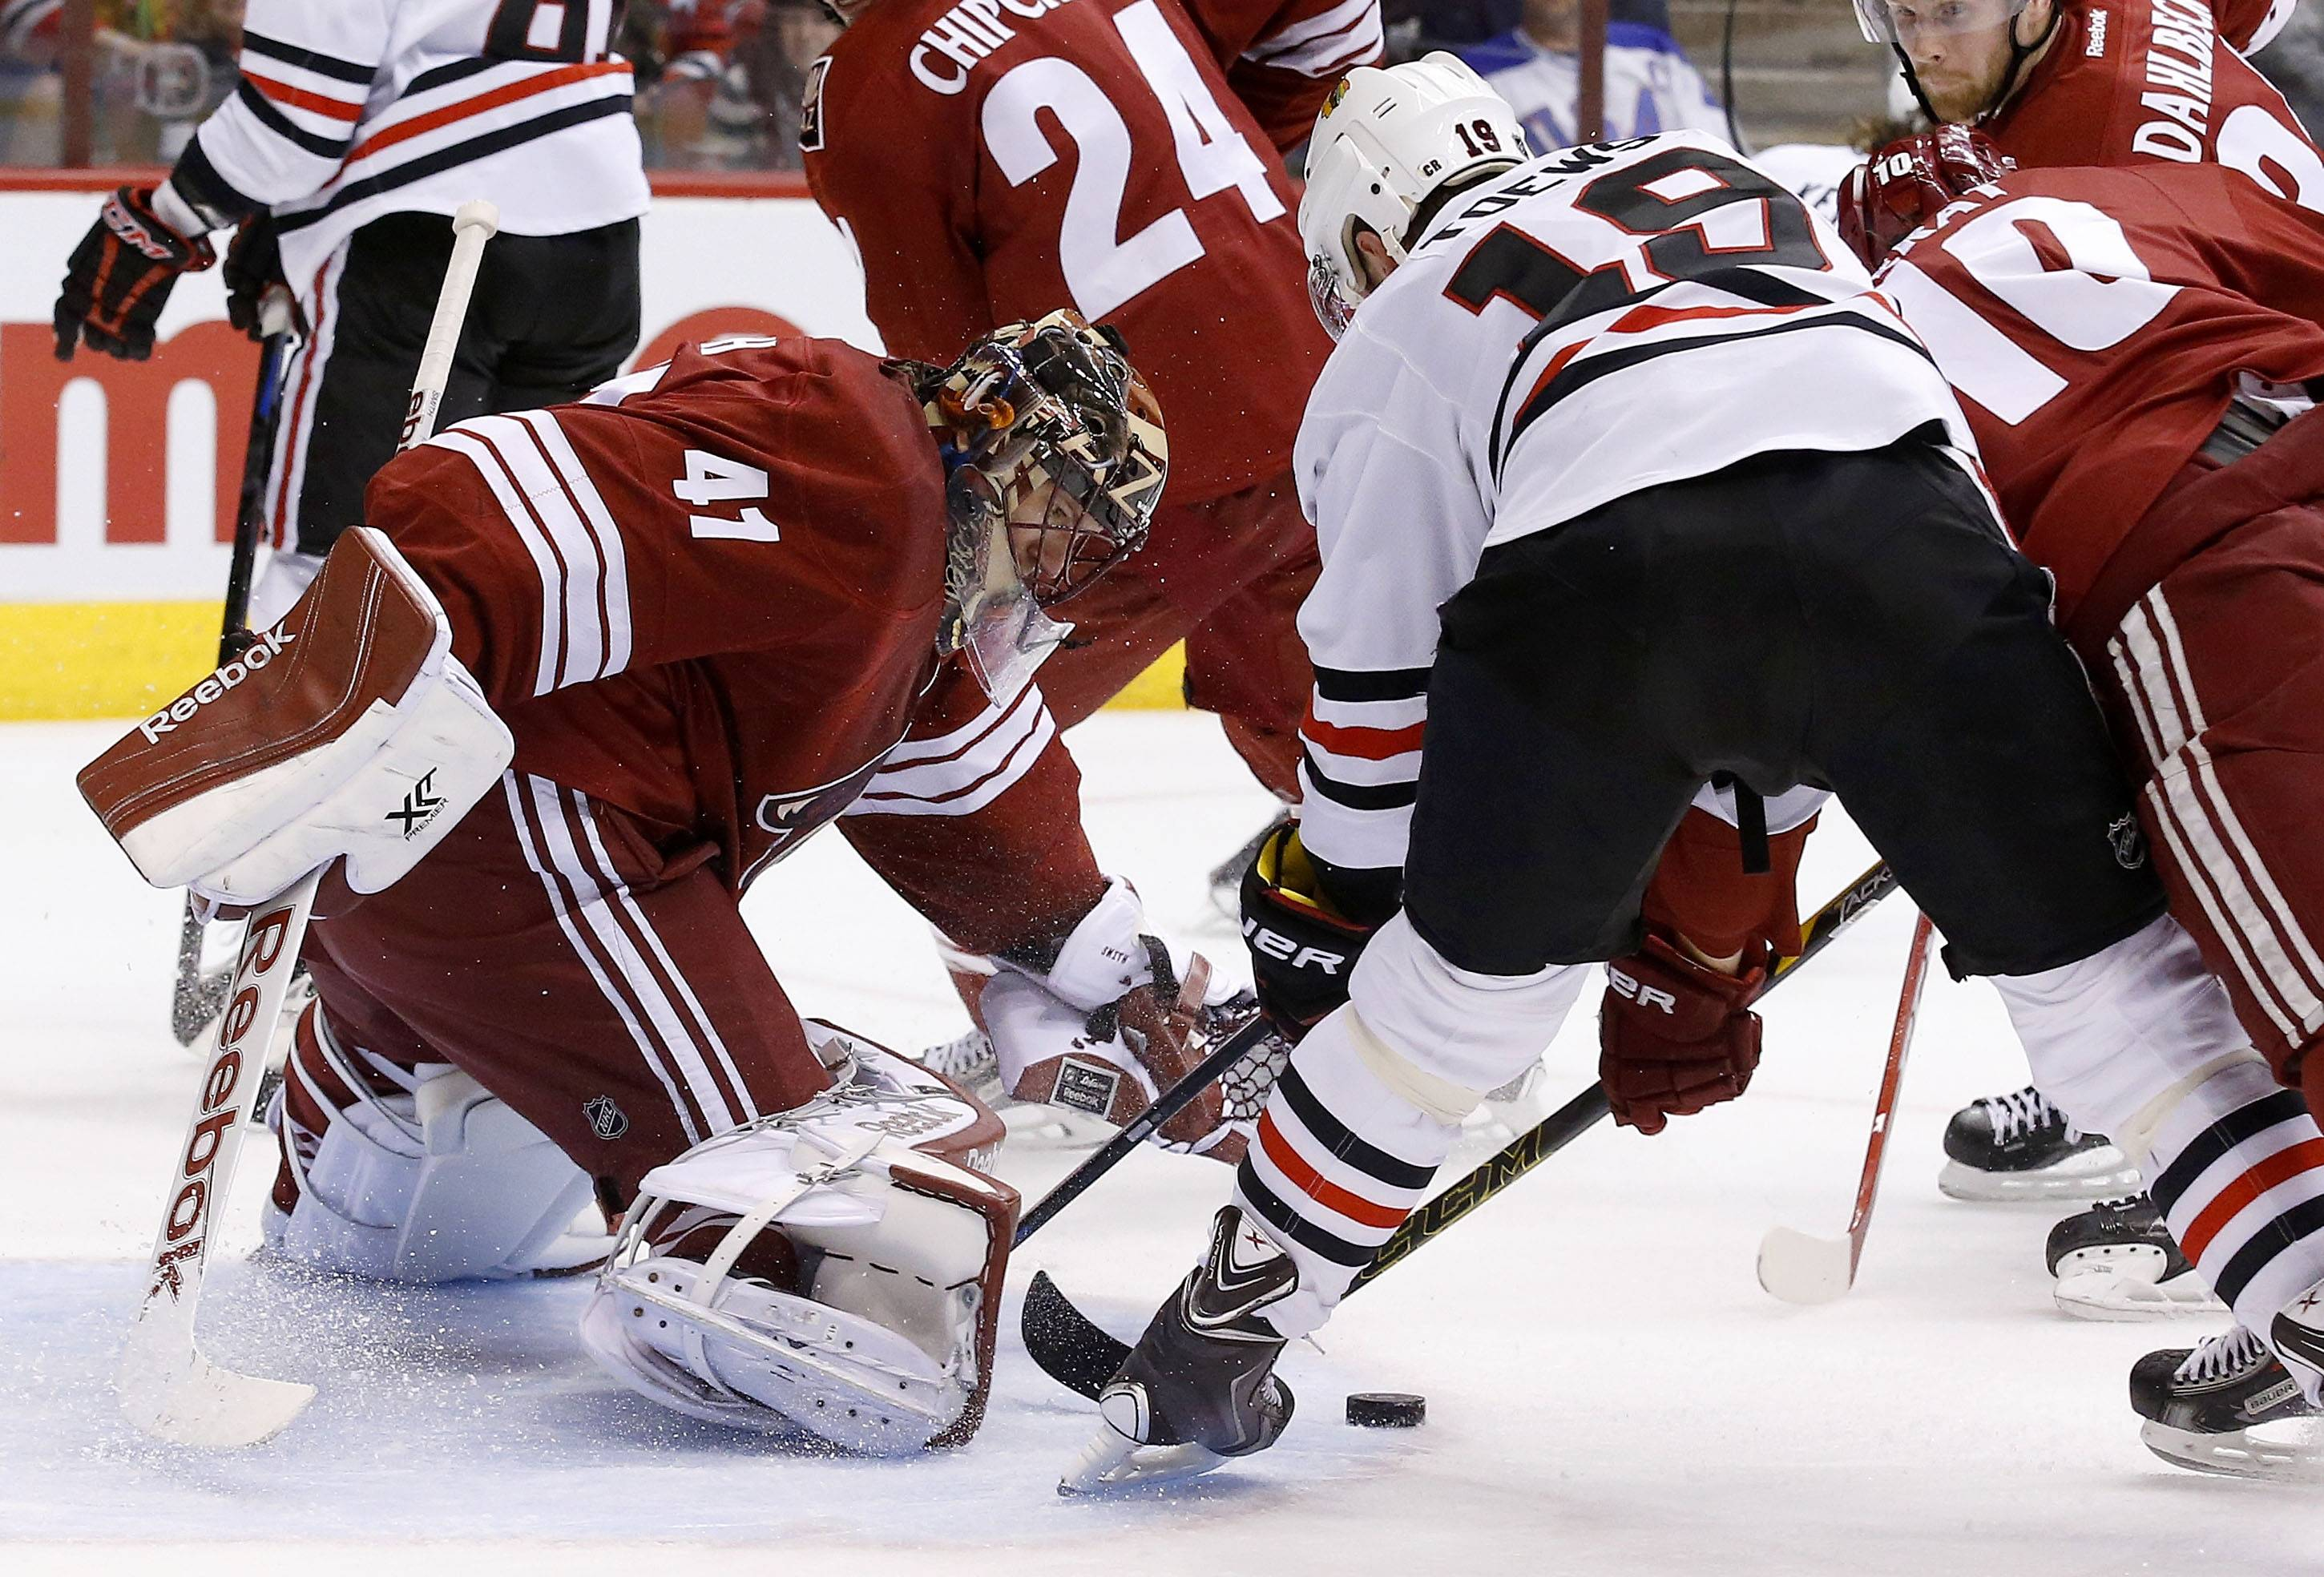 The Blackhawks' Jonathan Toews (19) tries to get a shot off in front of Arizona Coyotes' Mike Smith (41) as Coyotes' Martin Erat (10) defends during the first period of the game Thursday in Glendale, Ariz.